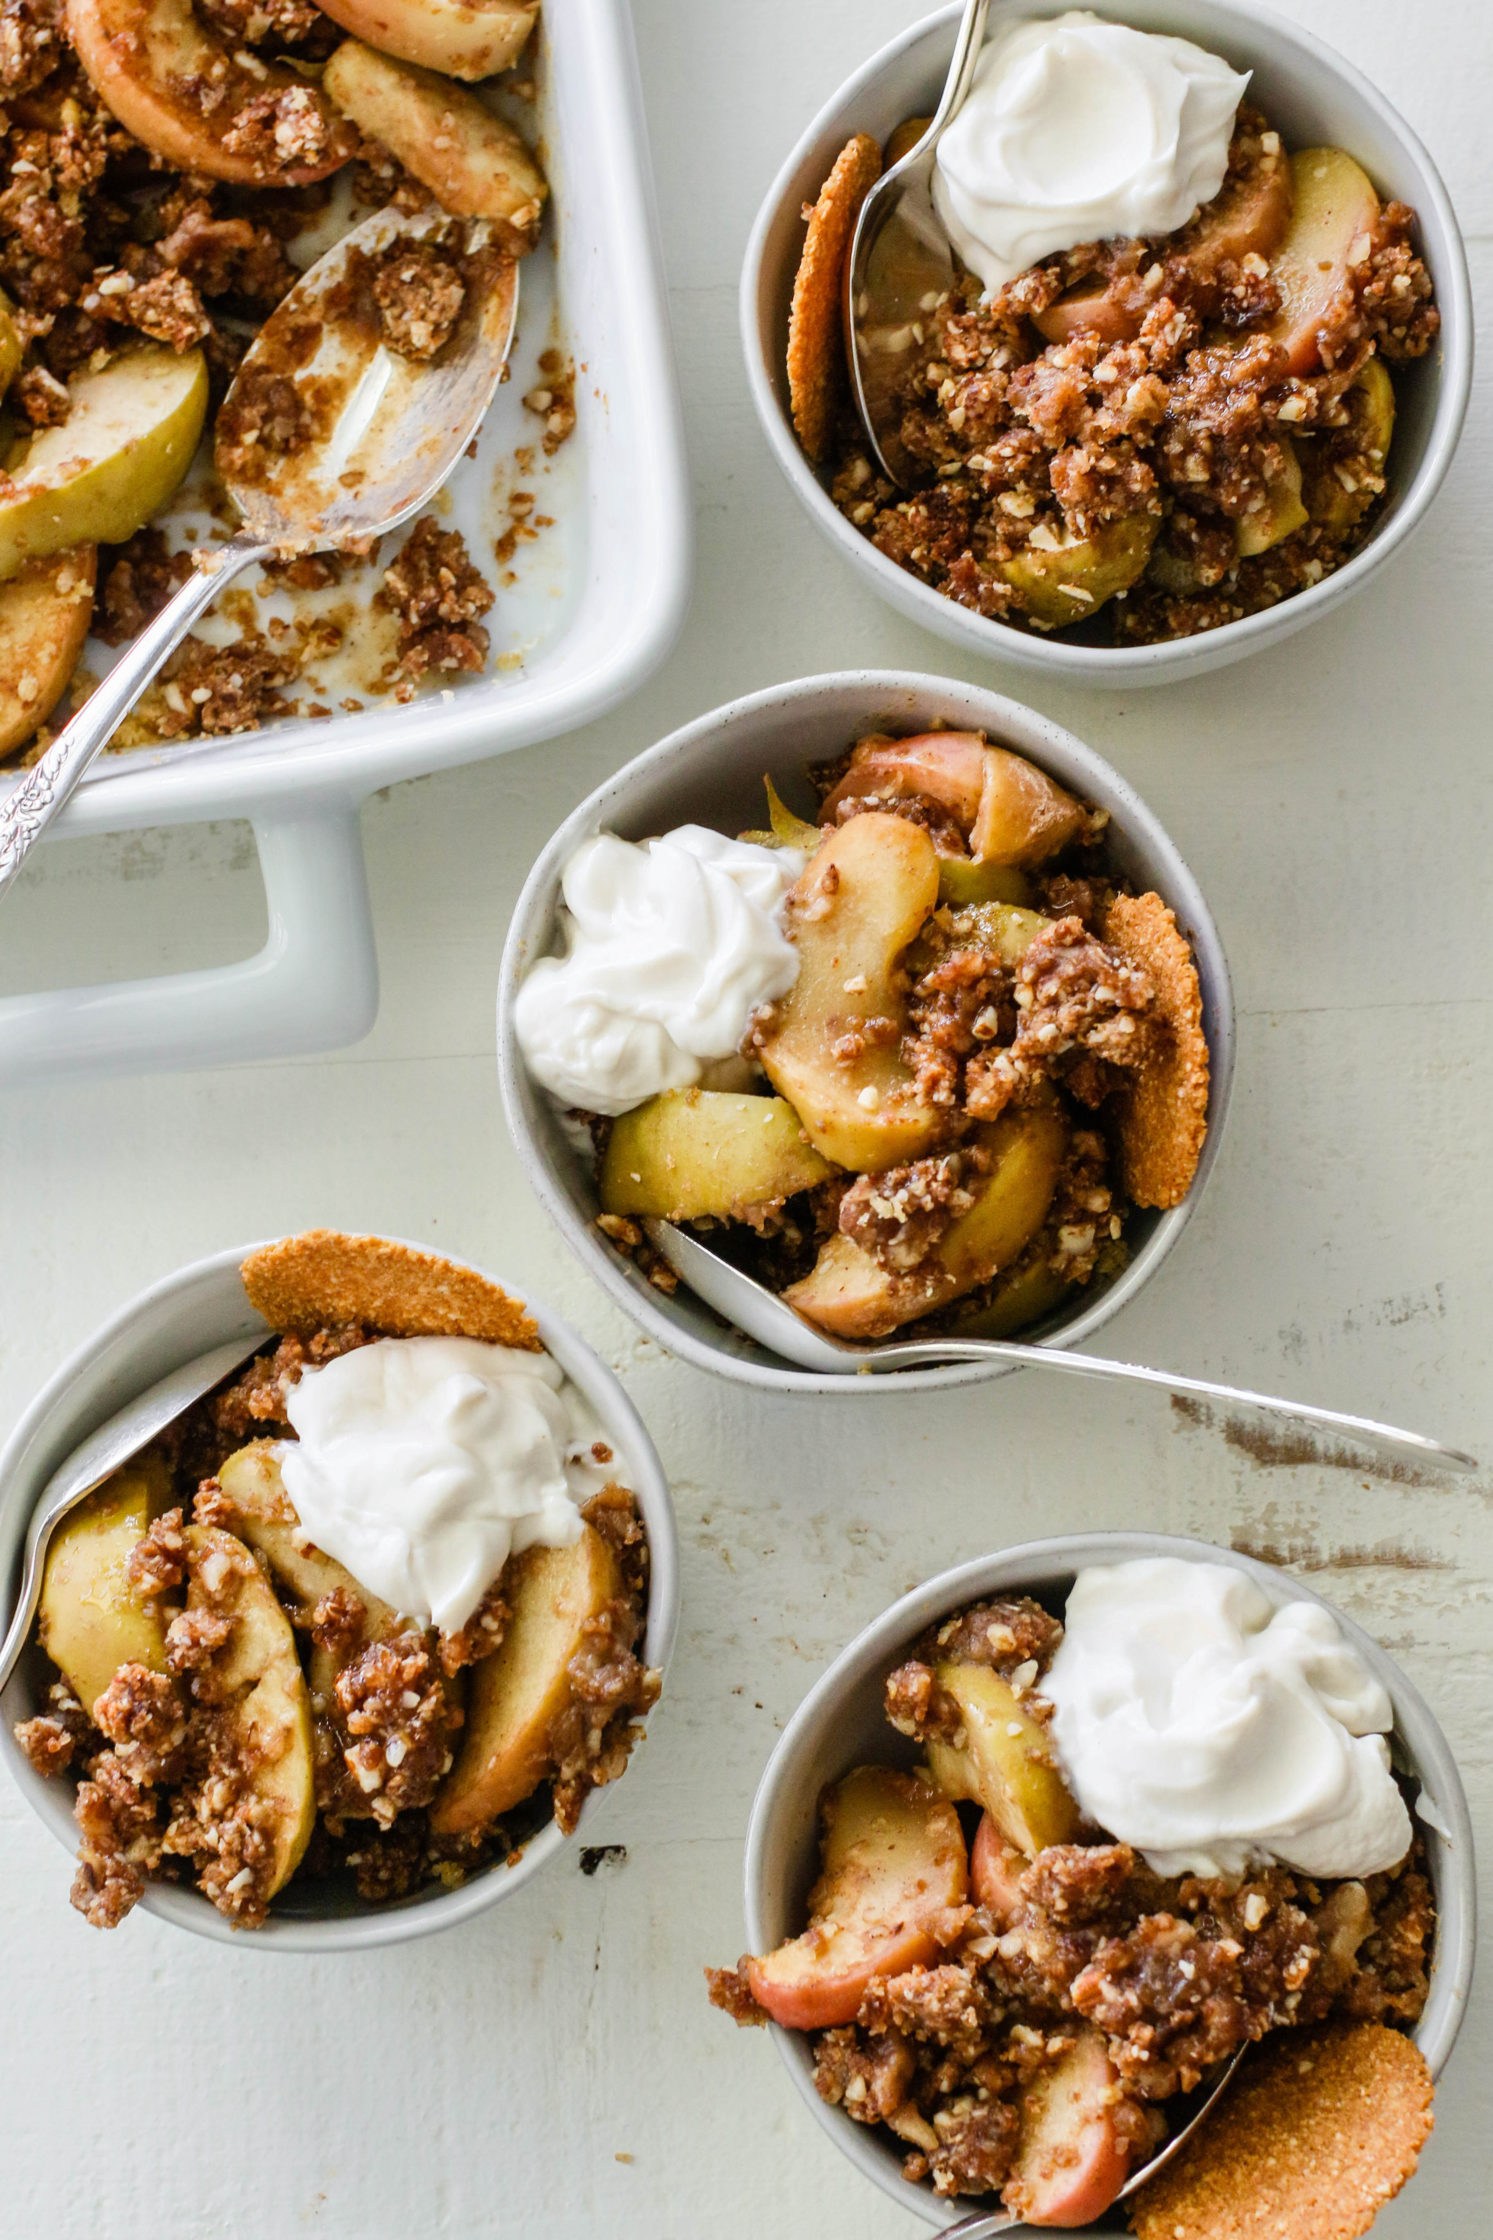 Baked Breakfast Apple Crisp (Gluten-Free!) by Flora & Vino